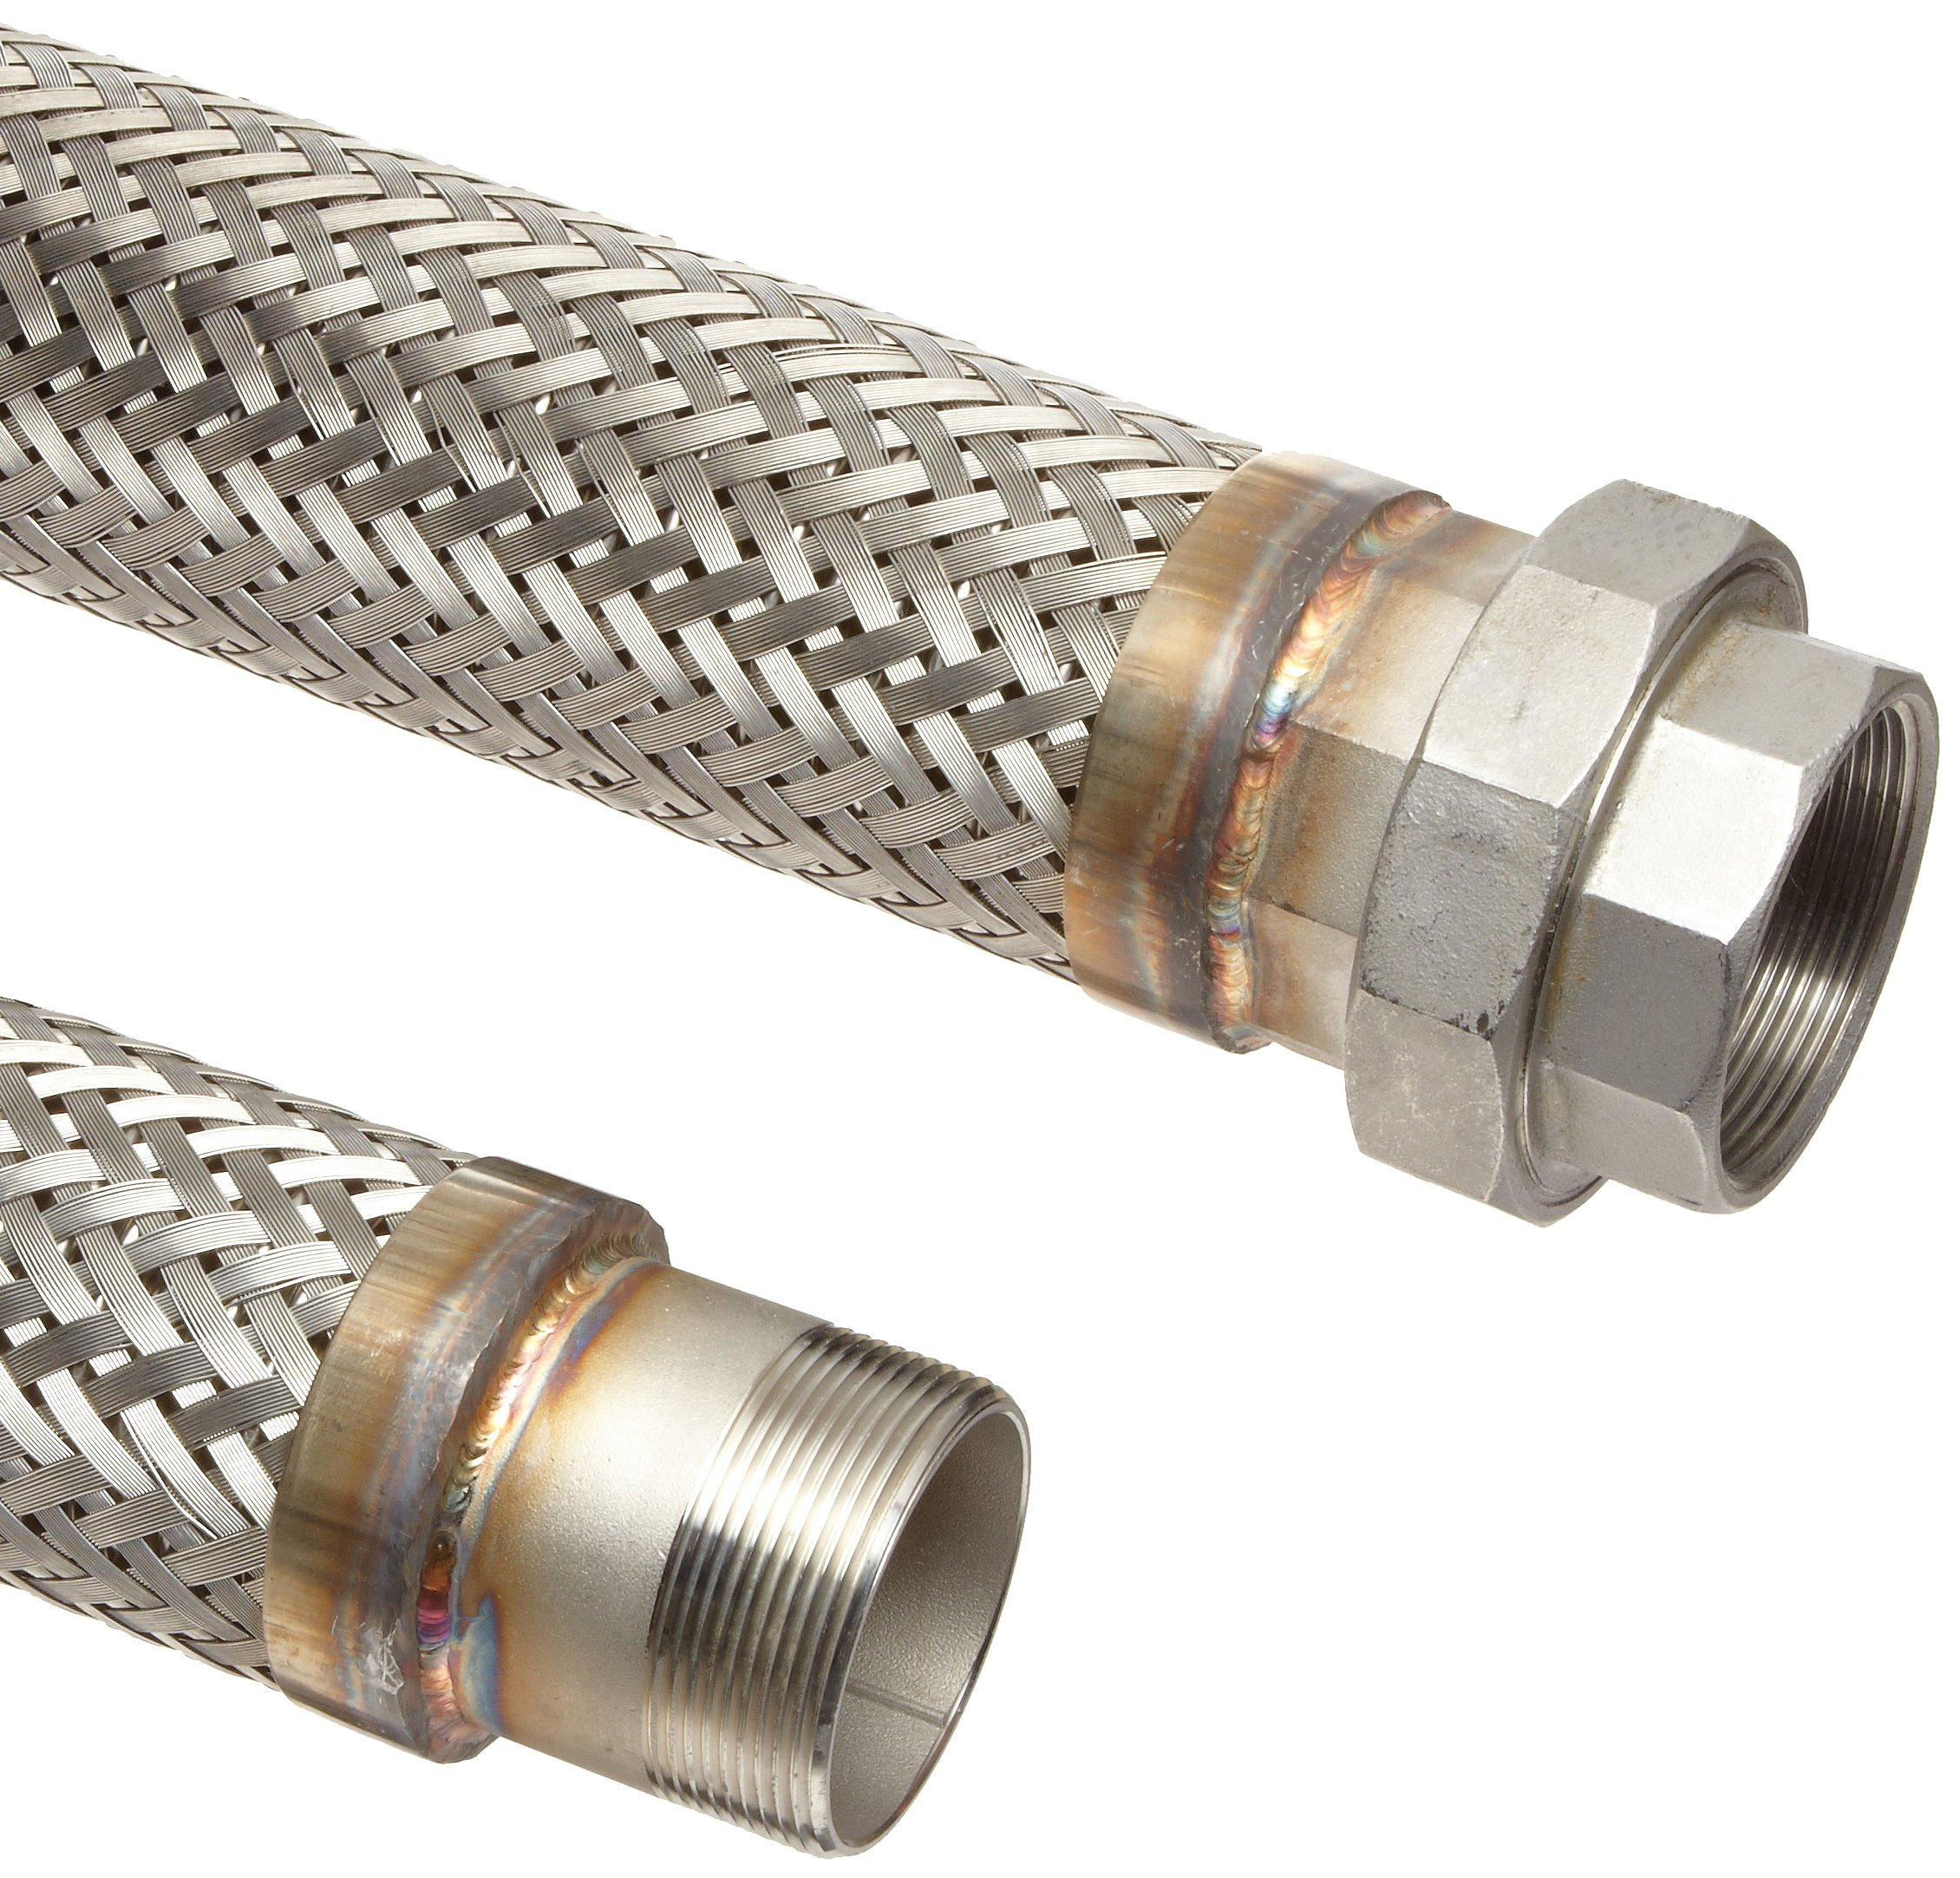 Unisource SF21 Stainless Steel Cryogenic Liquid Transfer Hose Assembly, 1/2'' Stainless Steel NPT Male x NPT Female Connection, 1075 PSI Maximum Pressure, 30'' Length, 1/2'' ID